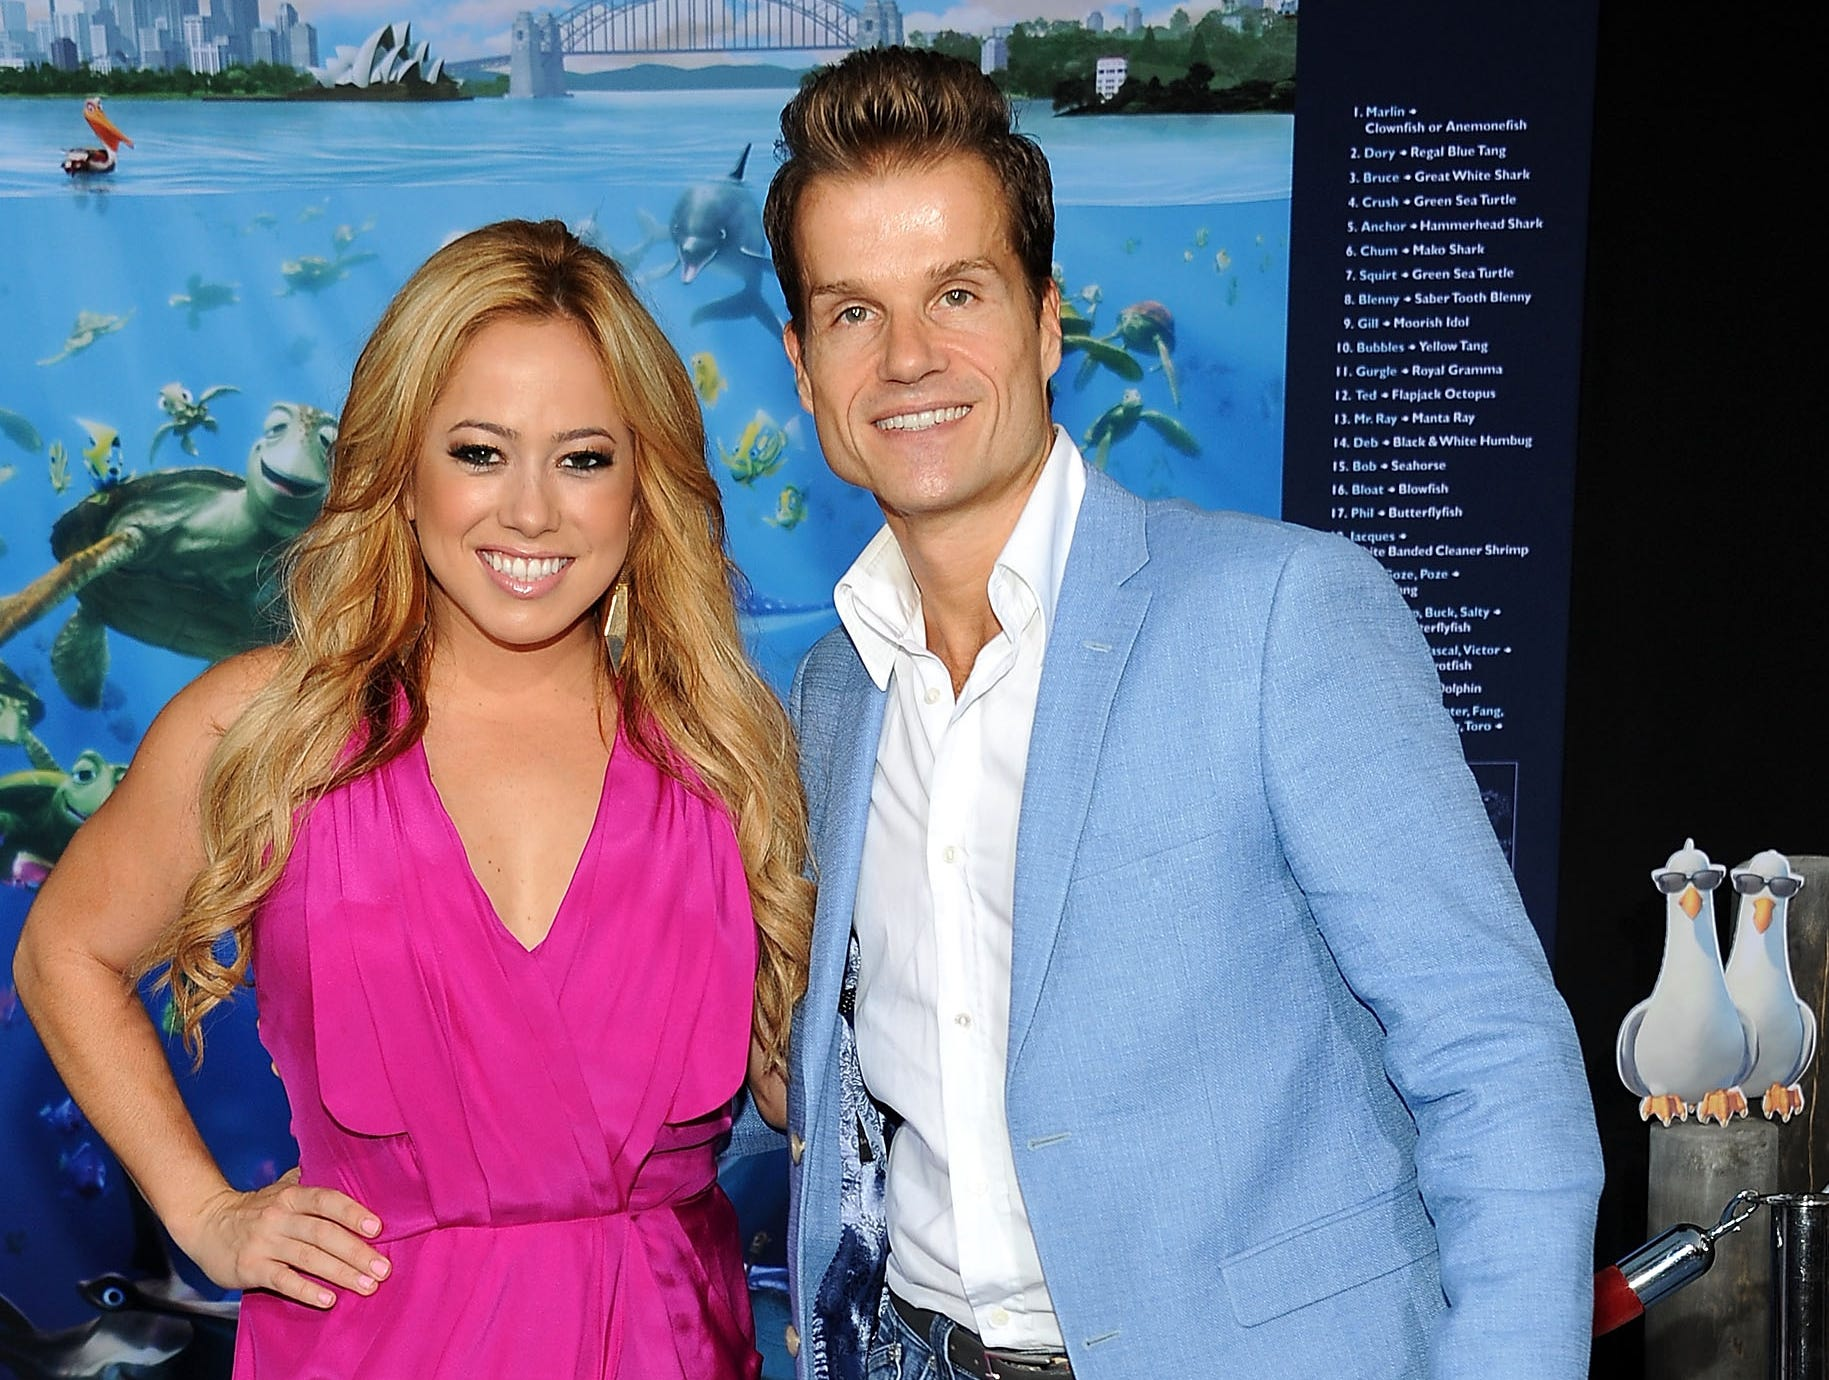 "HOLLYWOOD, CA - SEPTEMBER 10: Sabrina Bryan and Louis Van Amstel attend the premiere of Disney Pixar's ""Finding Nemo"" Disney Digital 3D at the El Capitan Theatre on September 10, 2012 in Hollywood, California. (Photo by Valerie Macon/Getty Images) ORG XMIT: 151731945 ORIG FILE ID: 151750155"